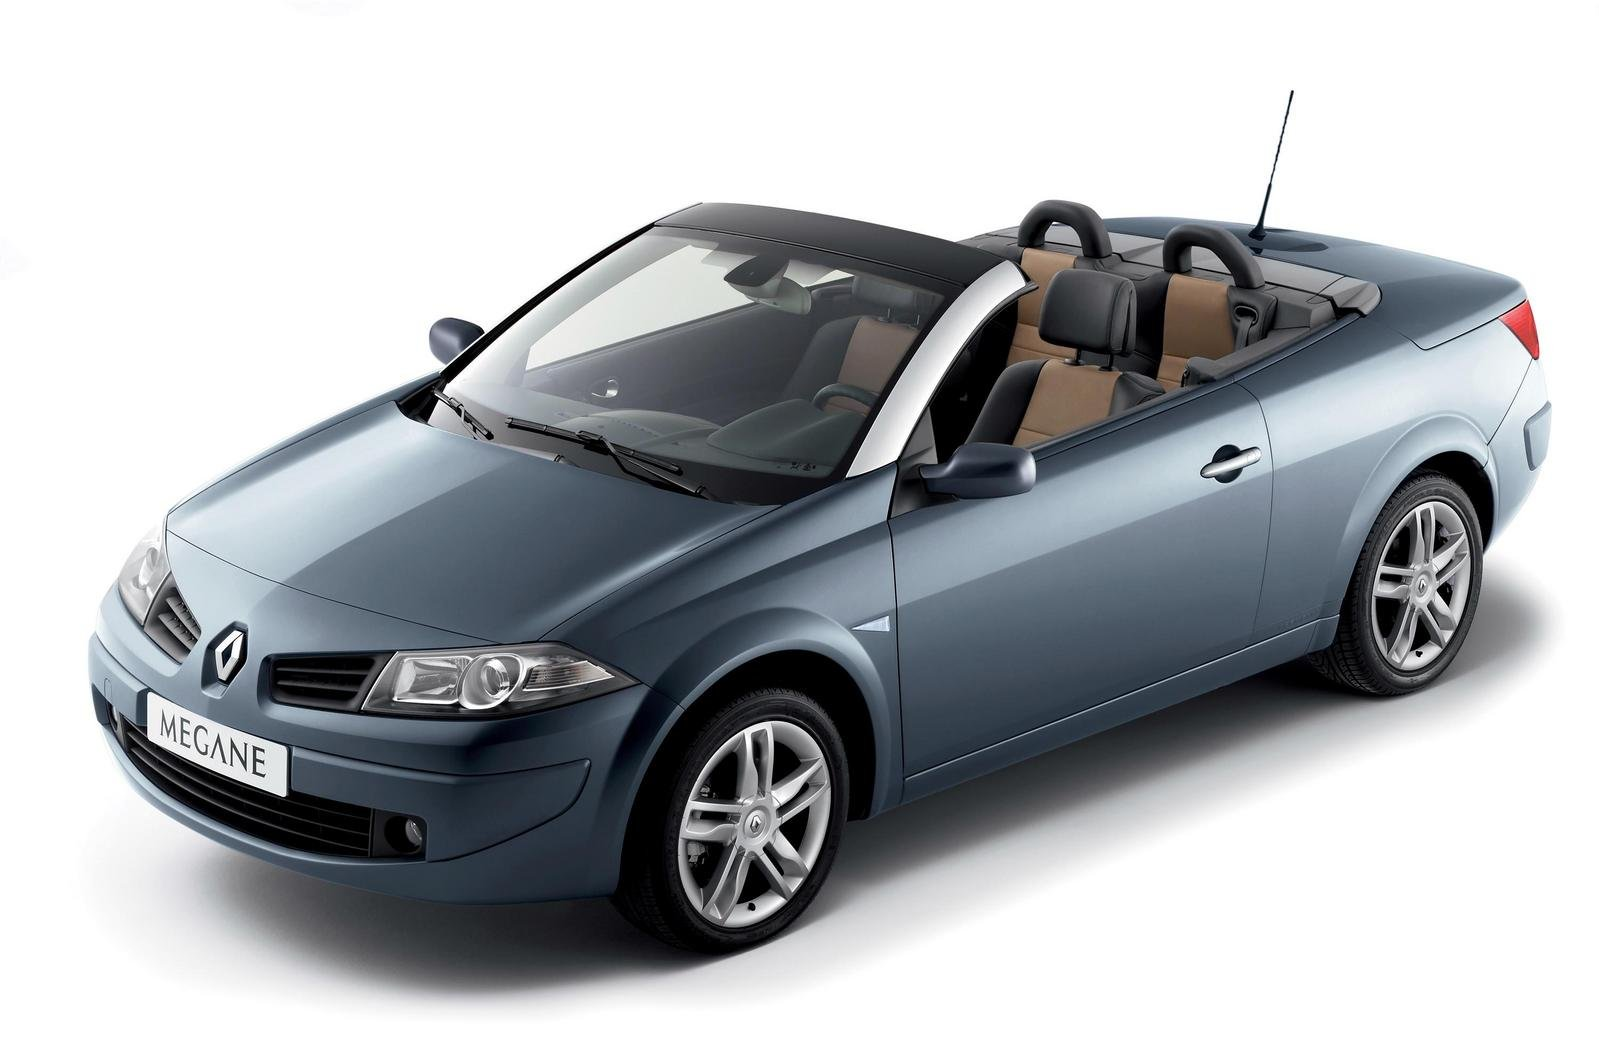 2006 renault megane coupe cabriolet exception picture 123090 car review top speed. Black Bedroom Furniture Sets. Home Design Ideas